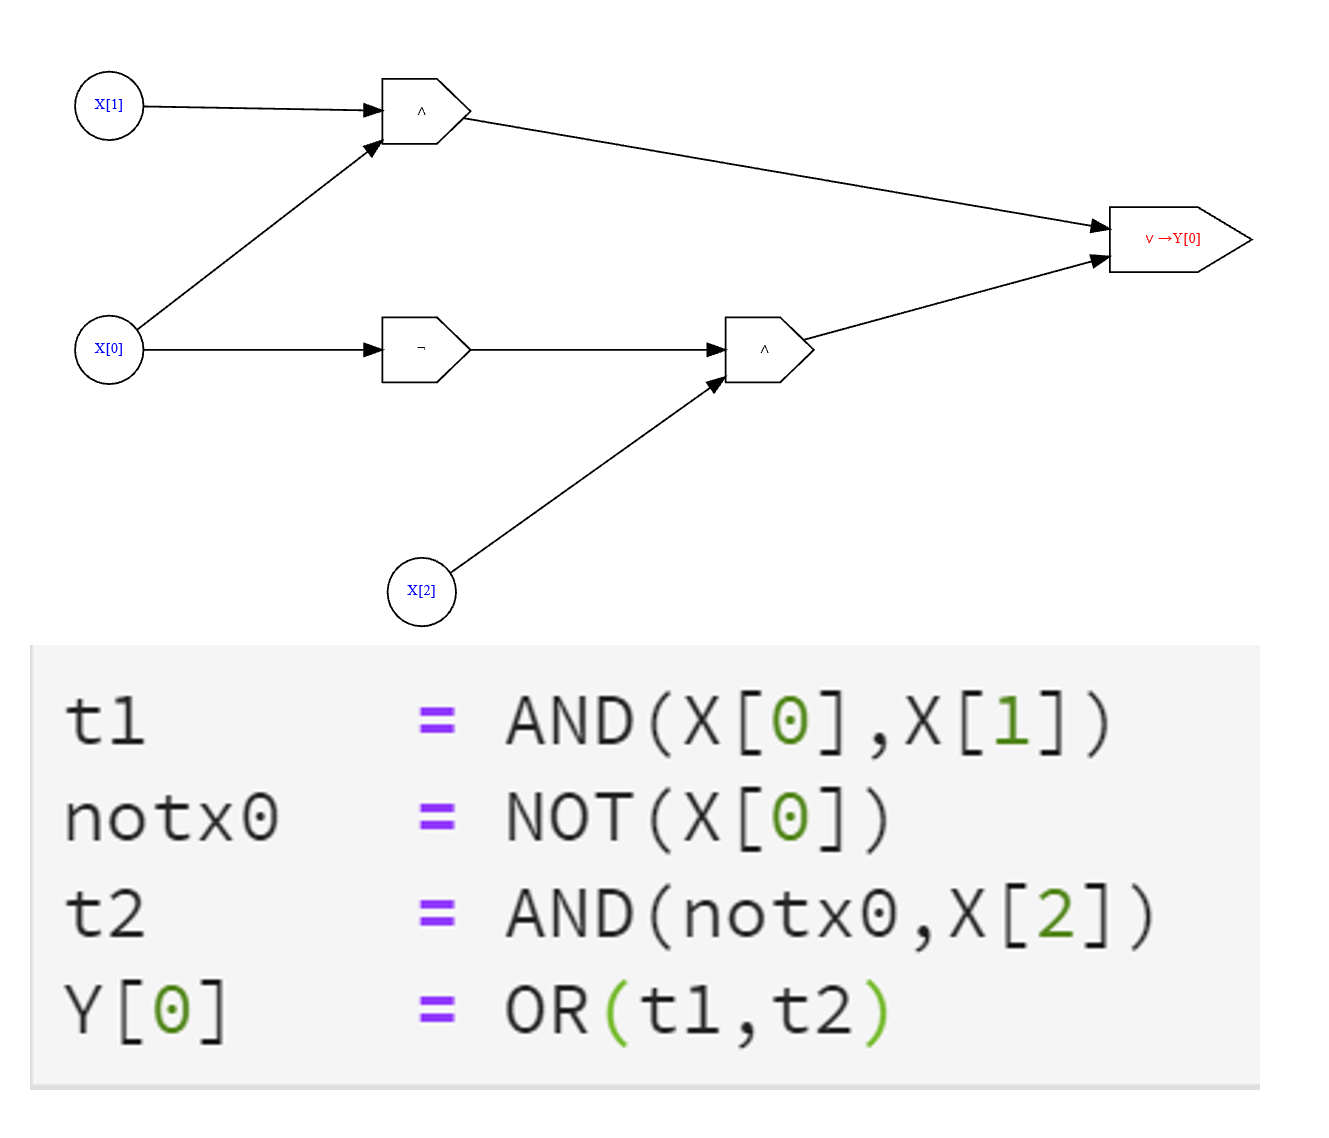 Two equivalent descriptions of the same AND/OR/NOT computation as both an AON program and a Boolan circuit.